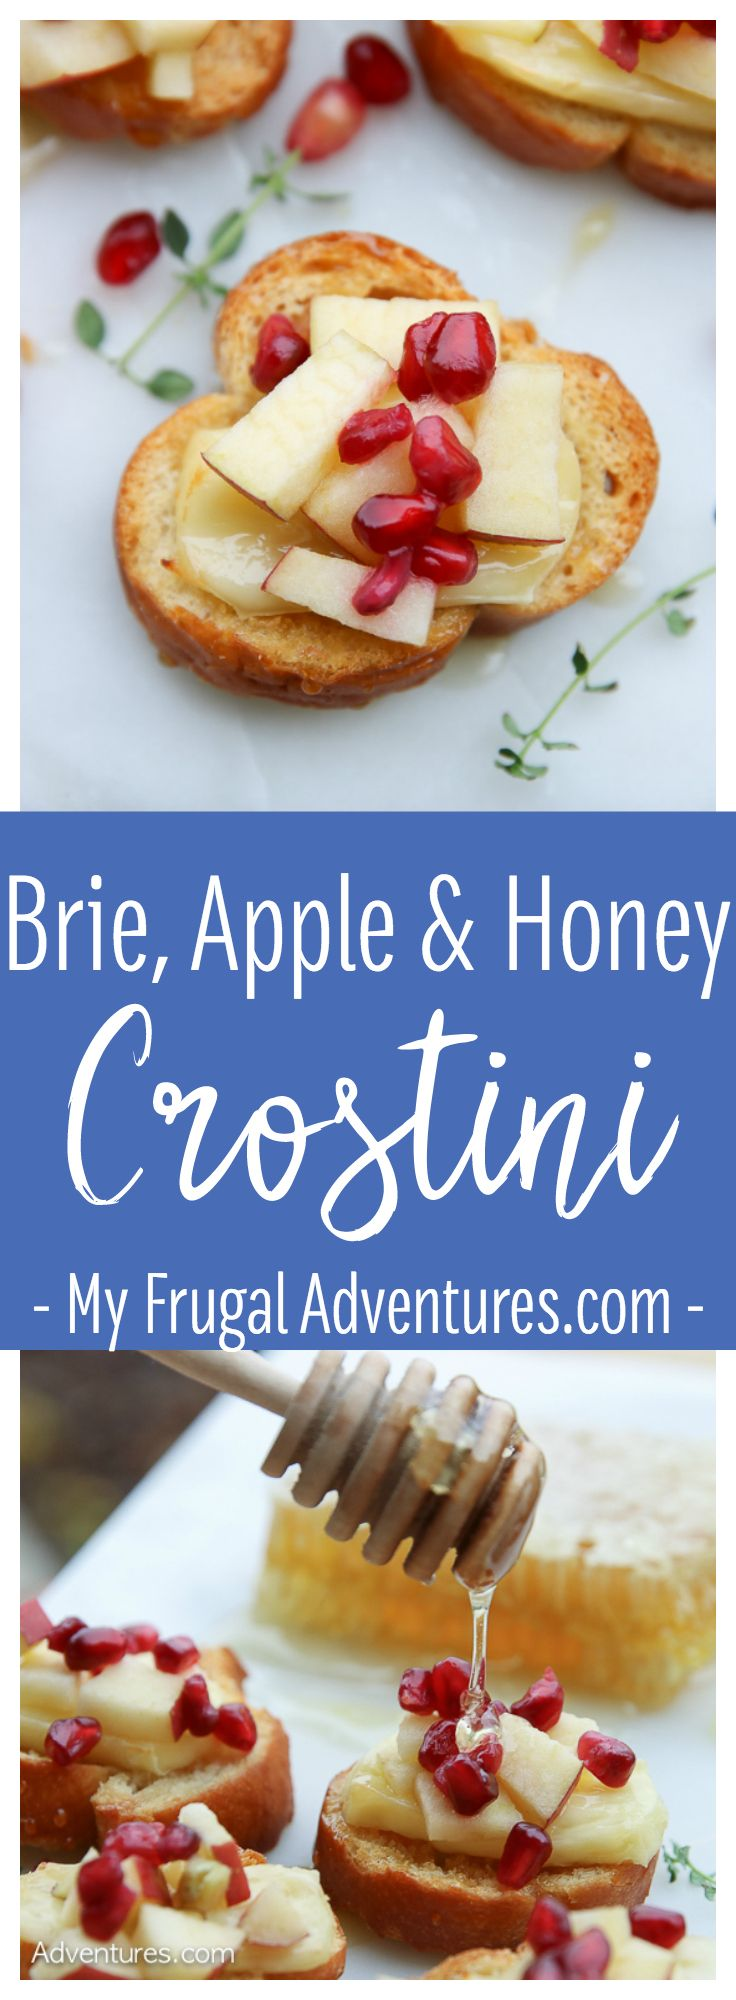 Brie, Apple and Honey Crostini- simple and delicious appetizer